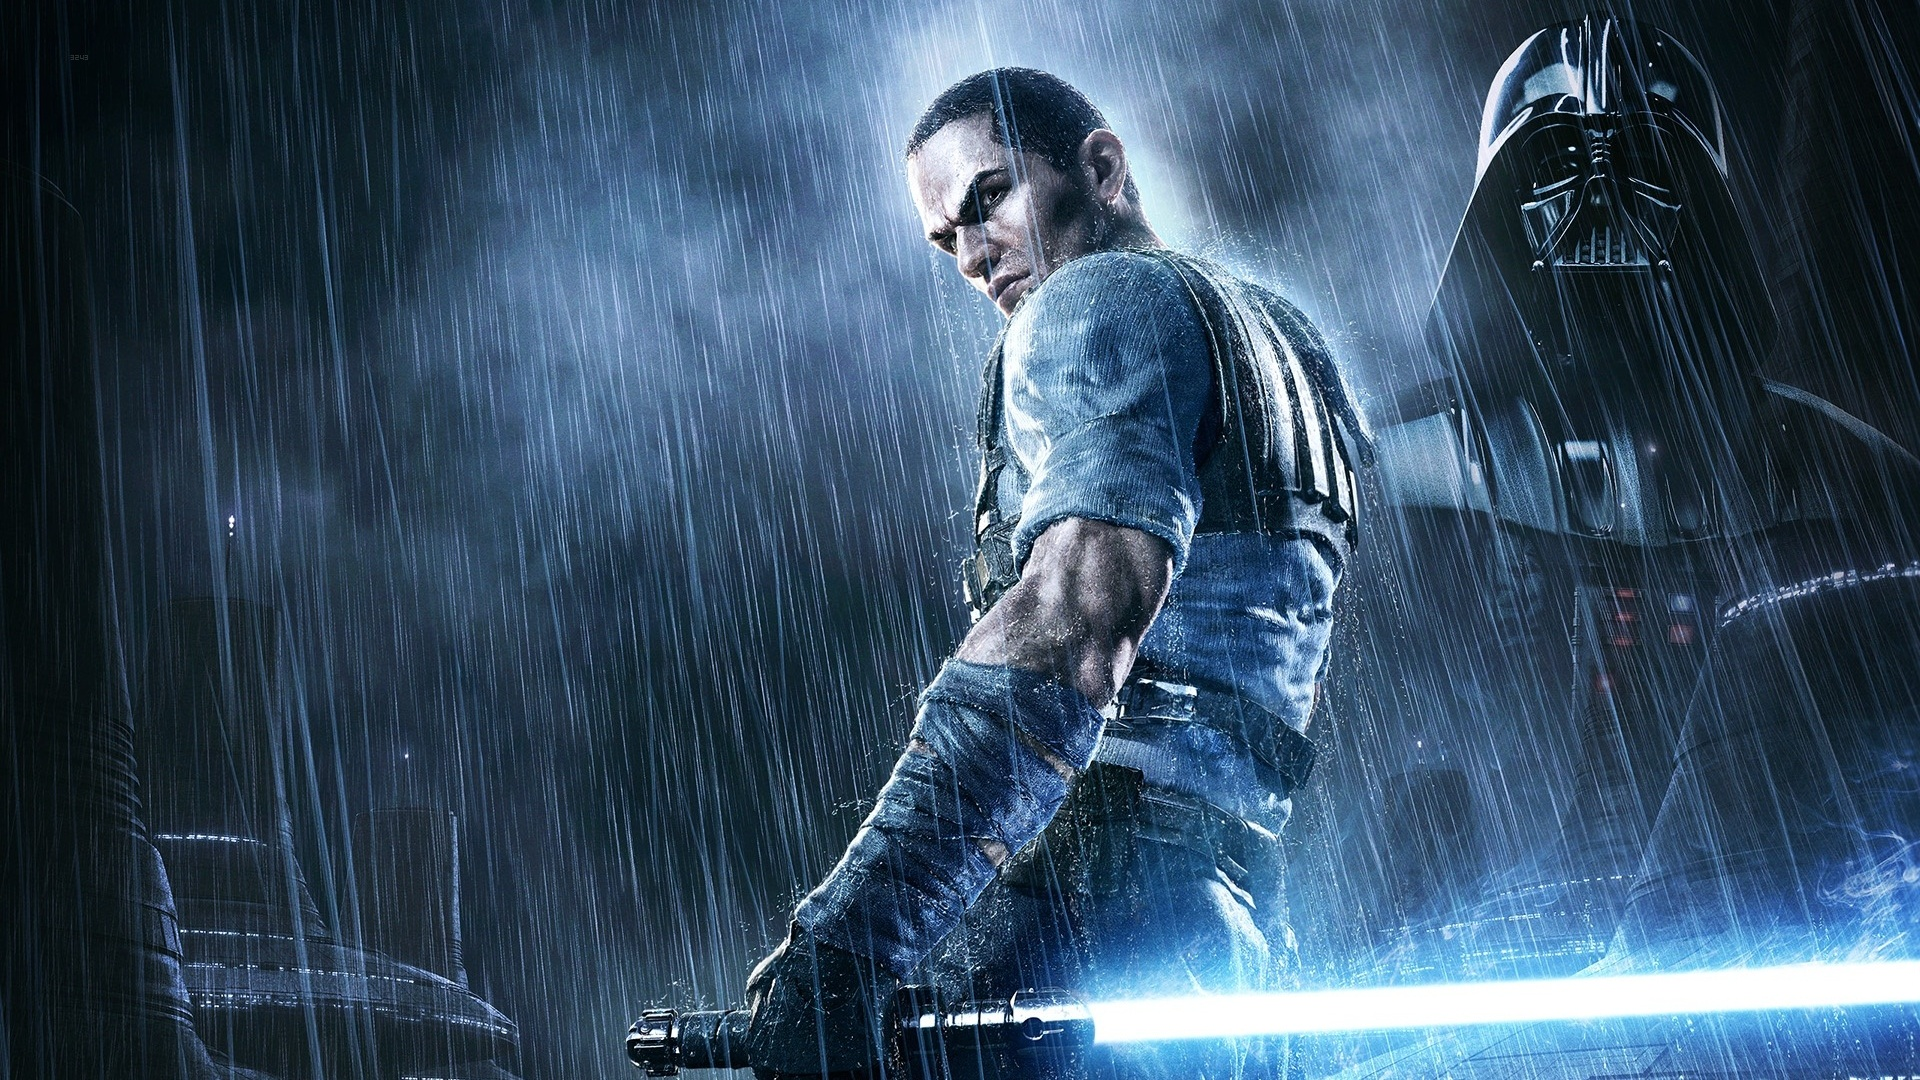 I didn't personally get a chance to work with him, but Sam Witwer was awesome advocate for The Force Unleashed and just all around good dude from where I stood.